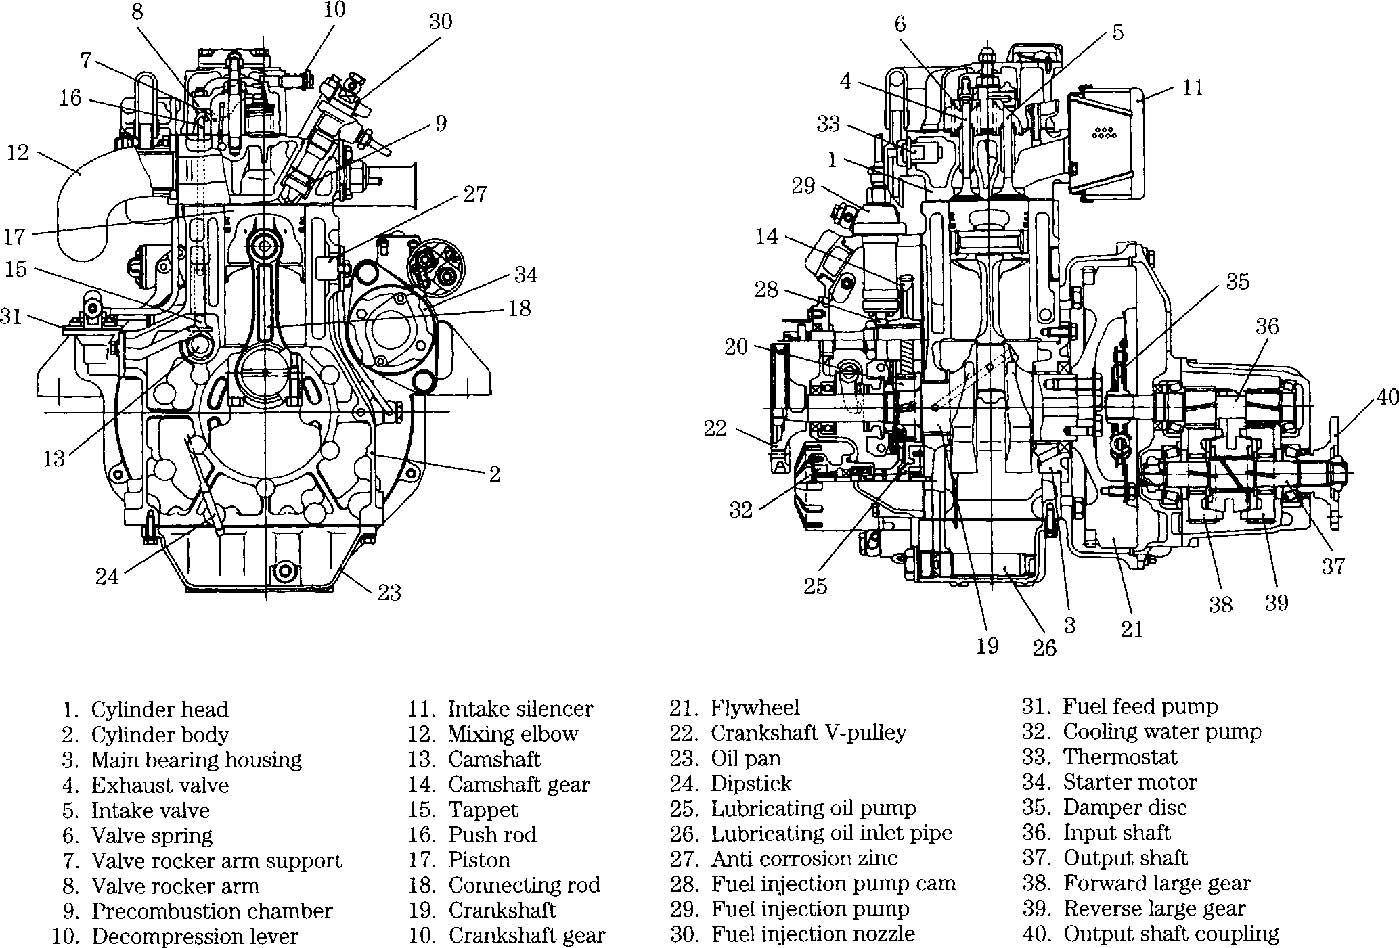 radial engine parts diagram 27 wiring diagram images marine diesel engine diagram marine engine wiring diagram [ 1399 x 948 Pixel ]